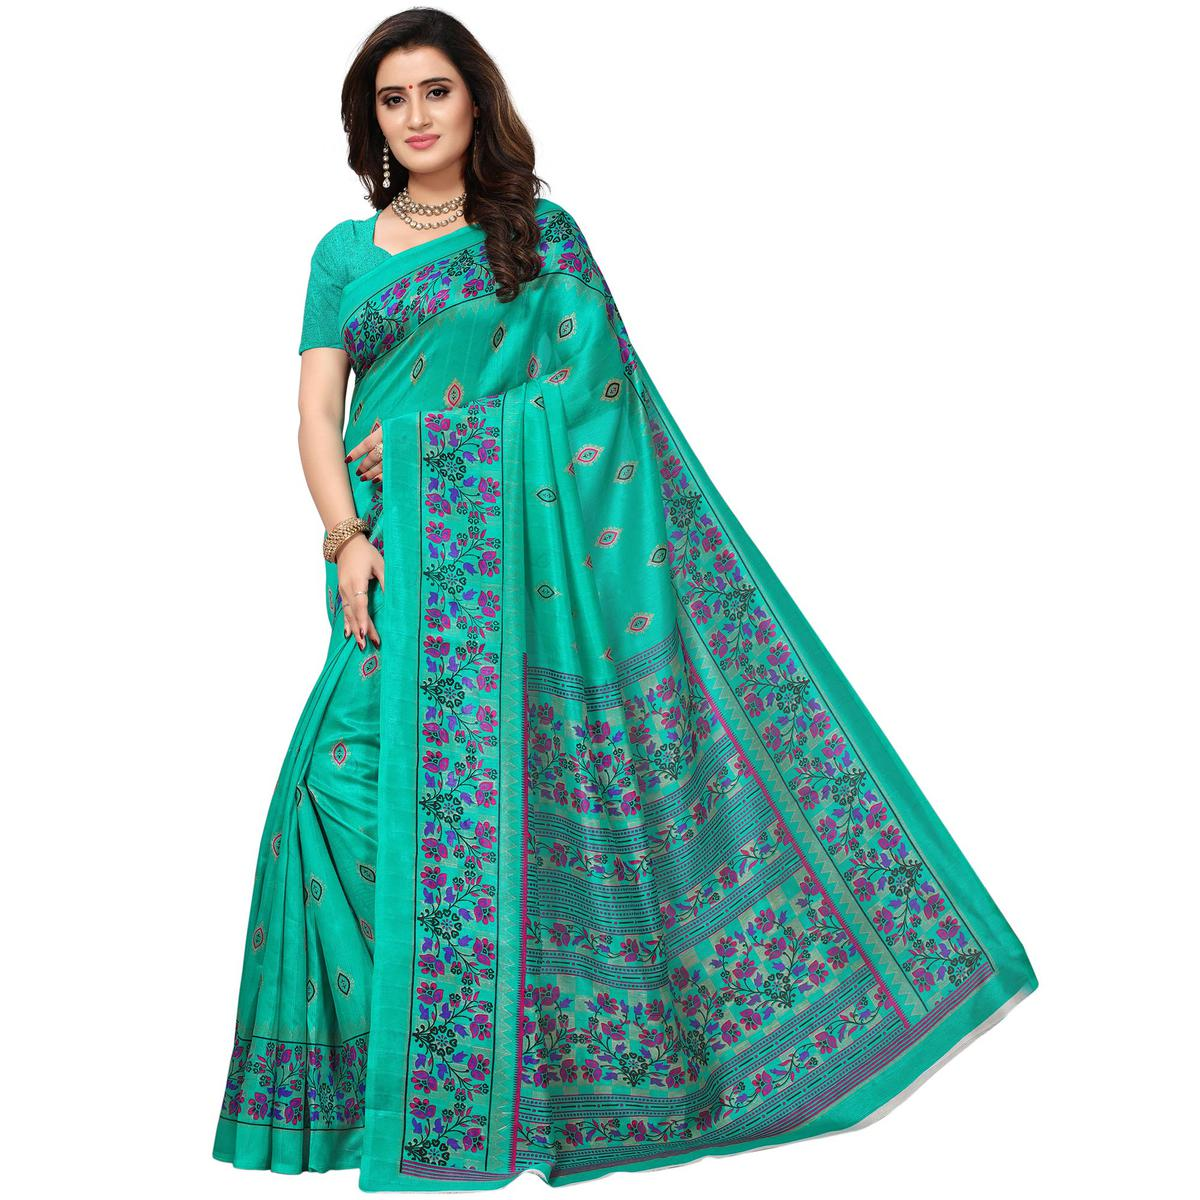 Ravishing Sea Green Colored Casual Printed Bhagalpuri Silk Saree